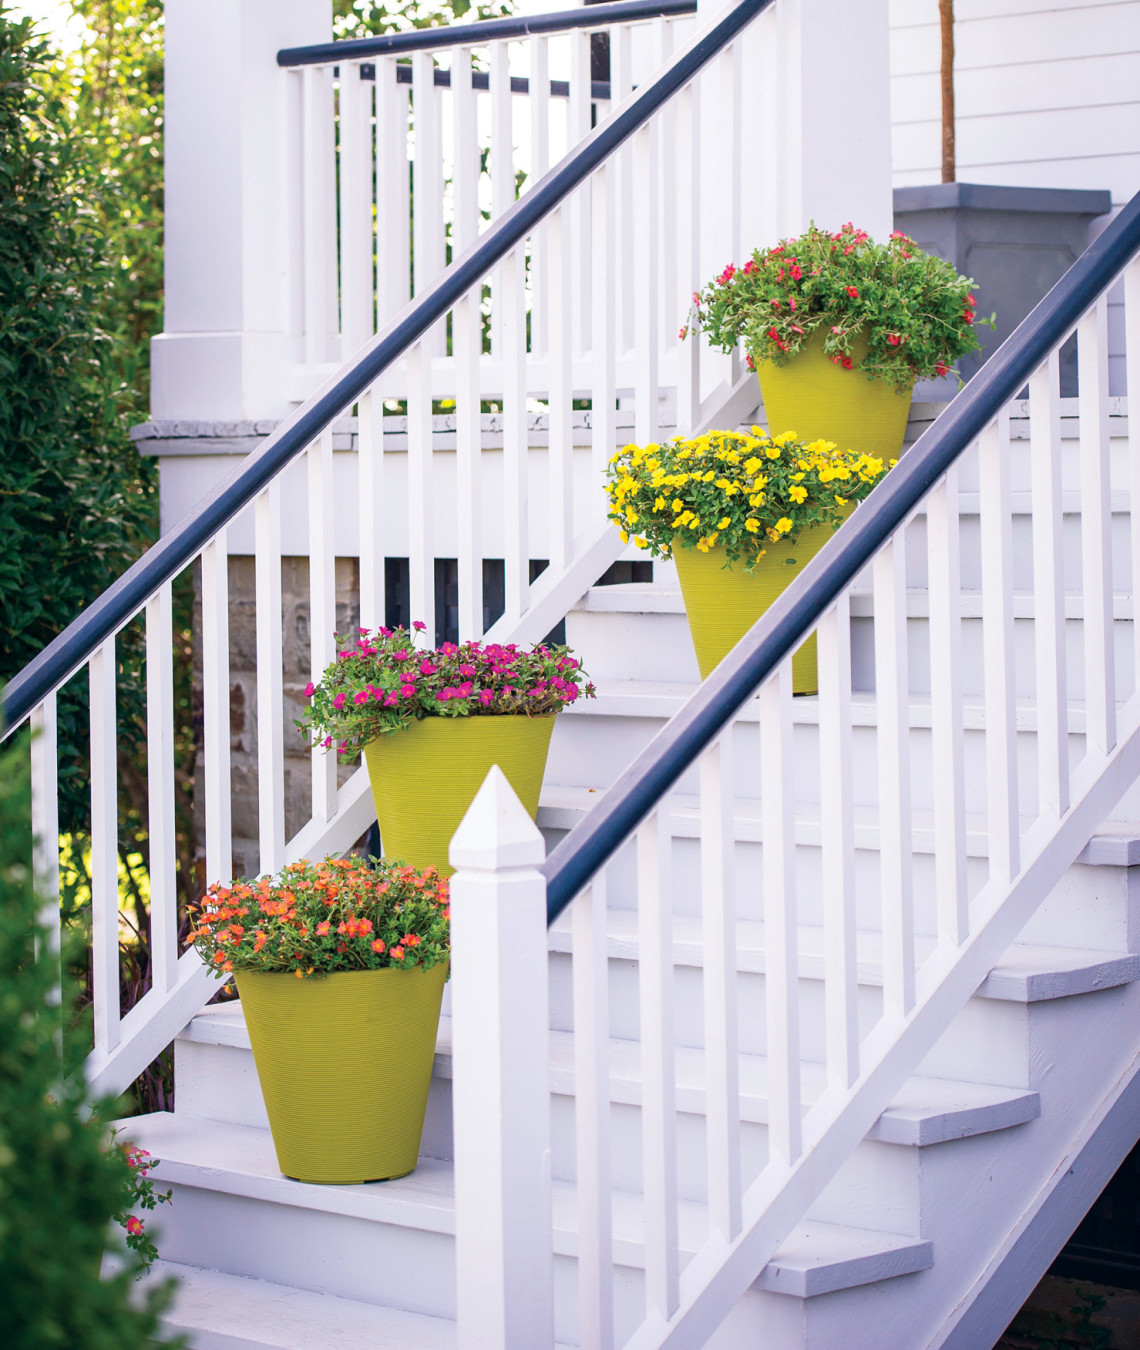 Ay mag ay is about youp allen smith container gardens ay mag - P allen smith container gardens ...